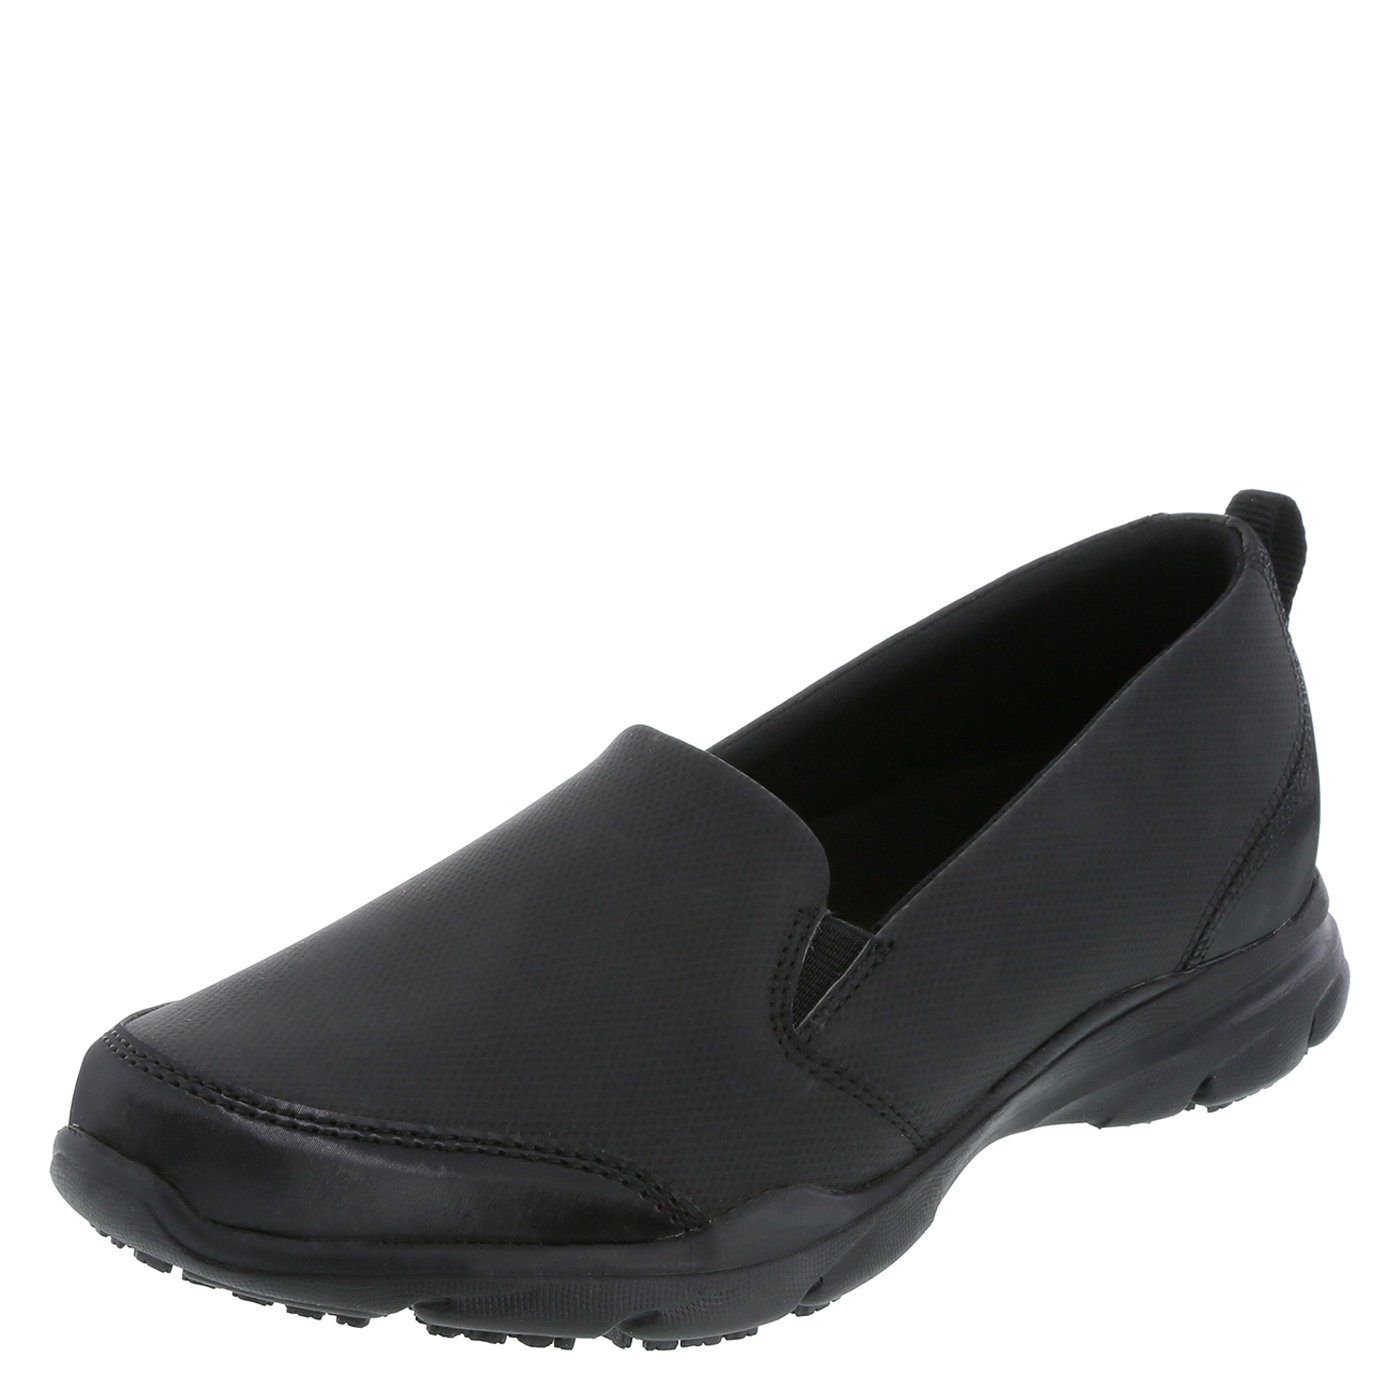 safeTstep Slip Resistant Women's Black Women's Camina Slip-On 9.5 Regular